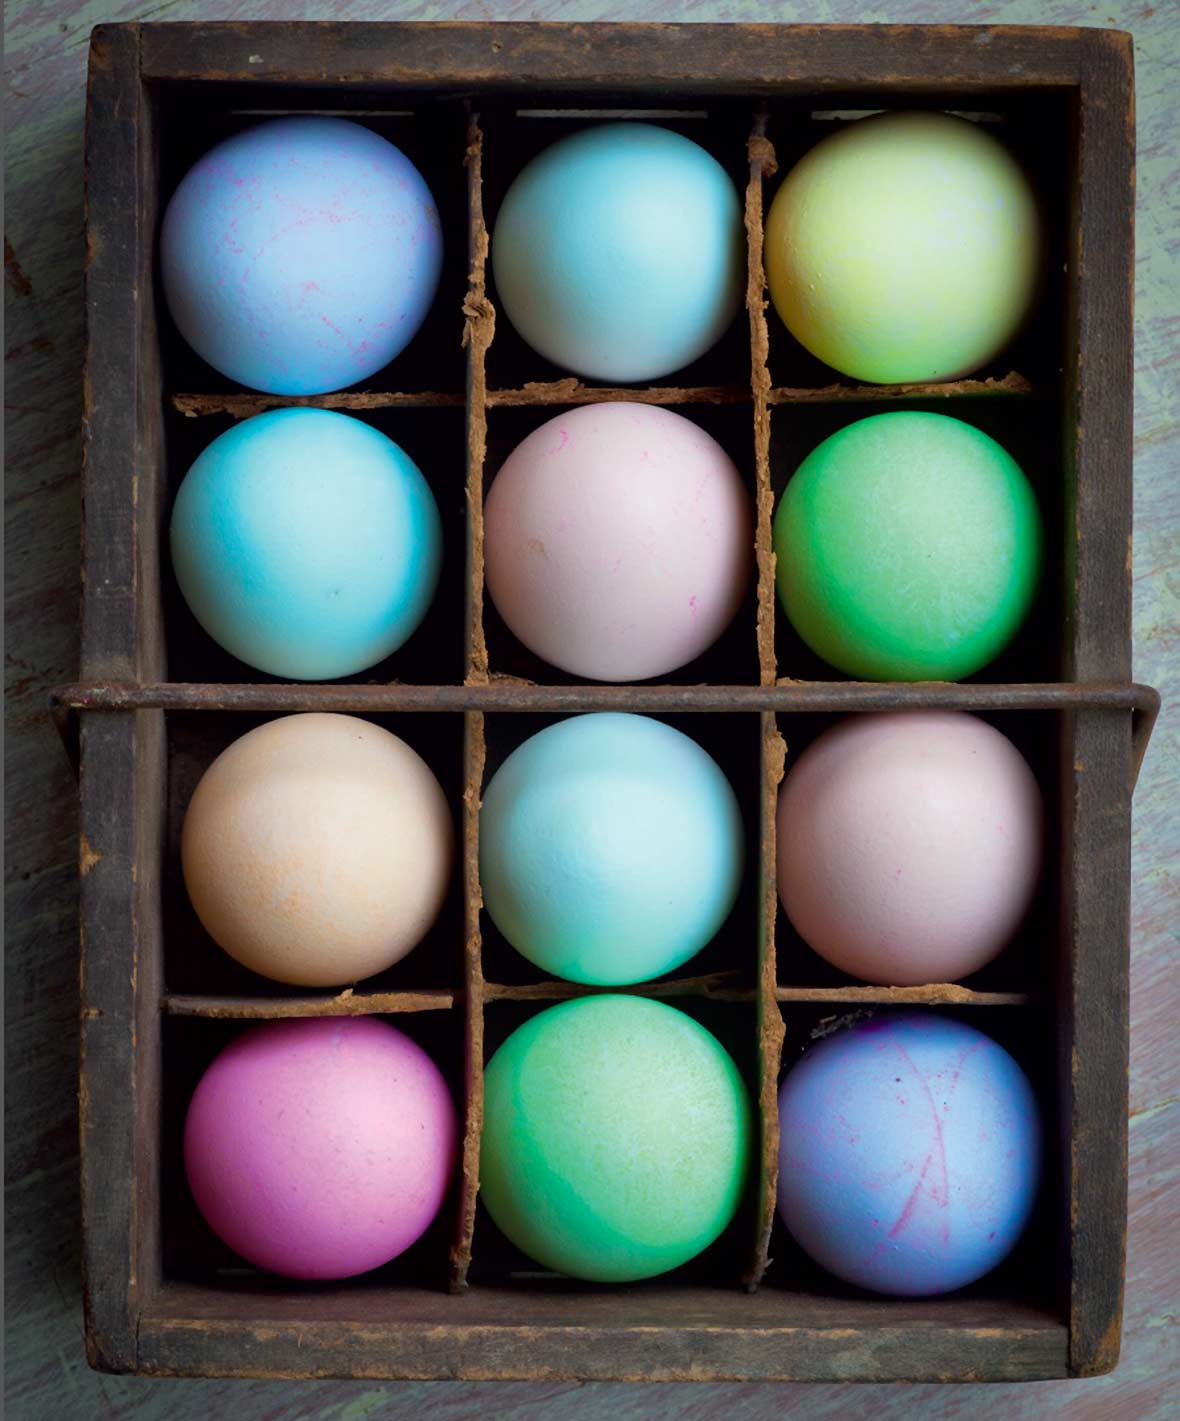 A crate filled with an assortment of dyed easter eggs.